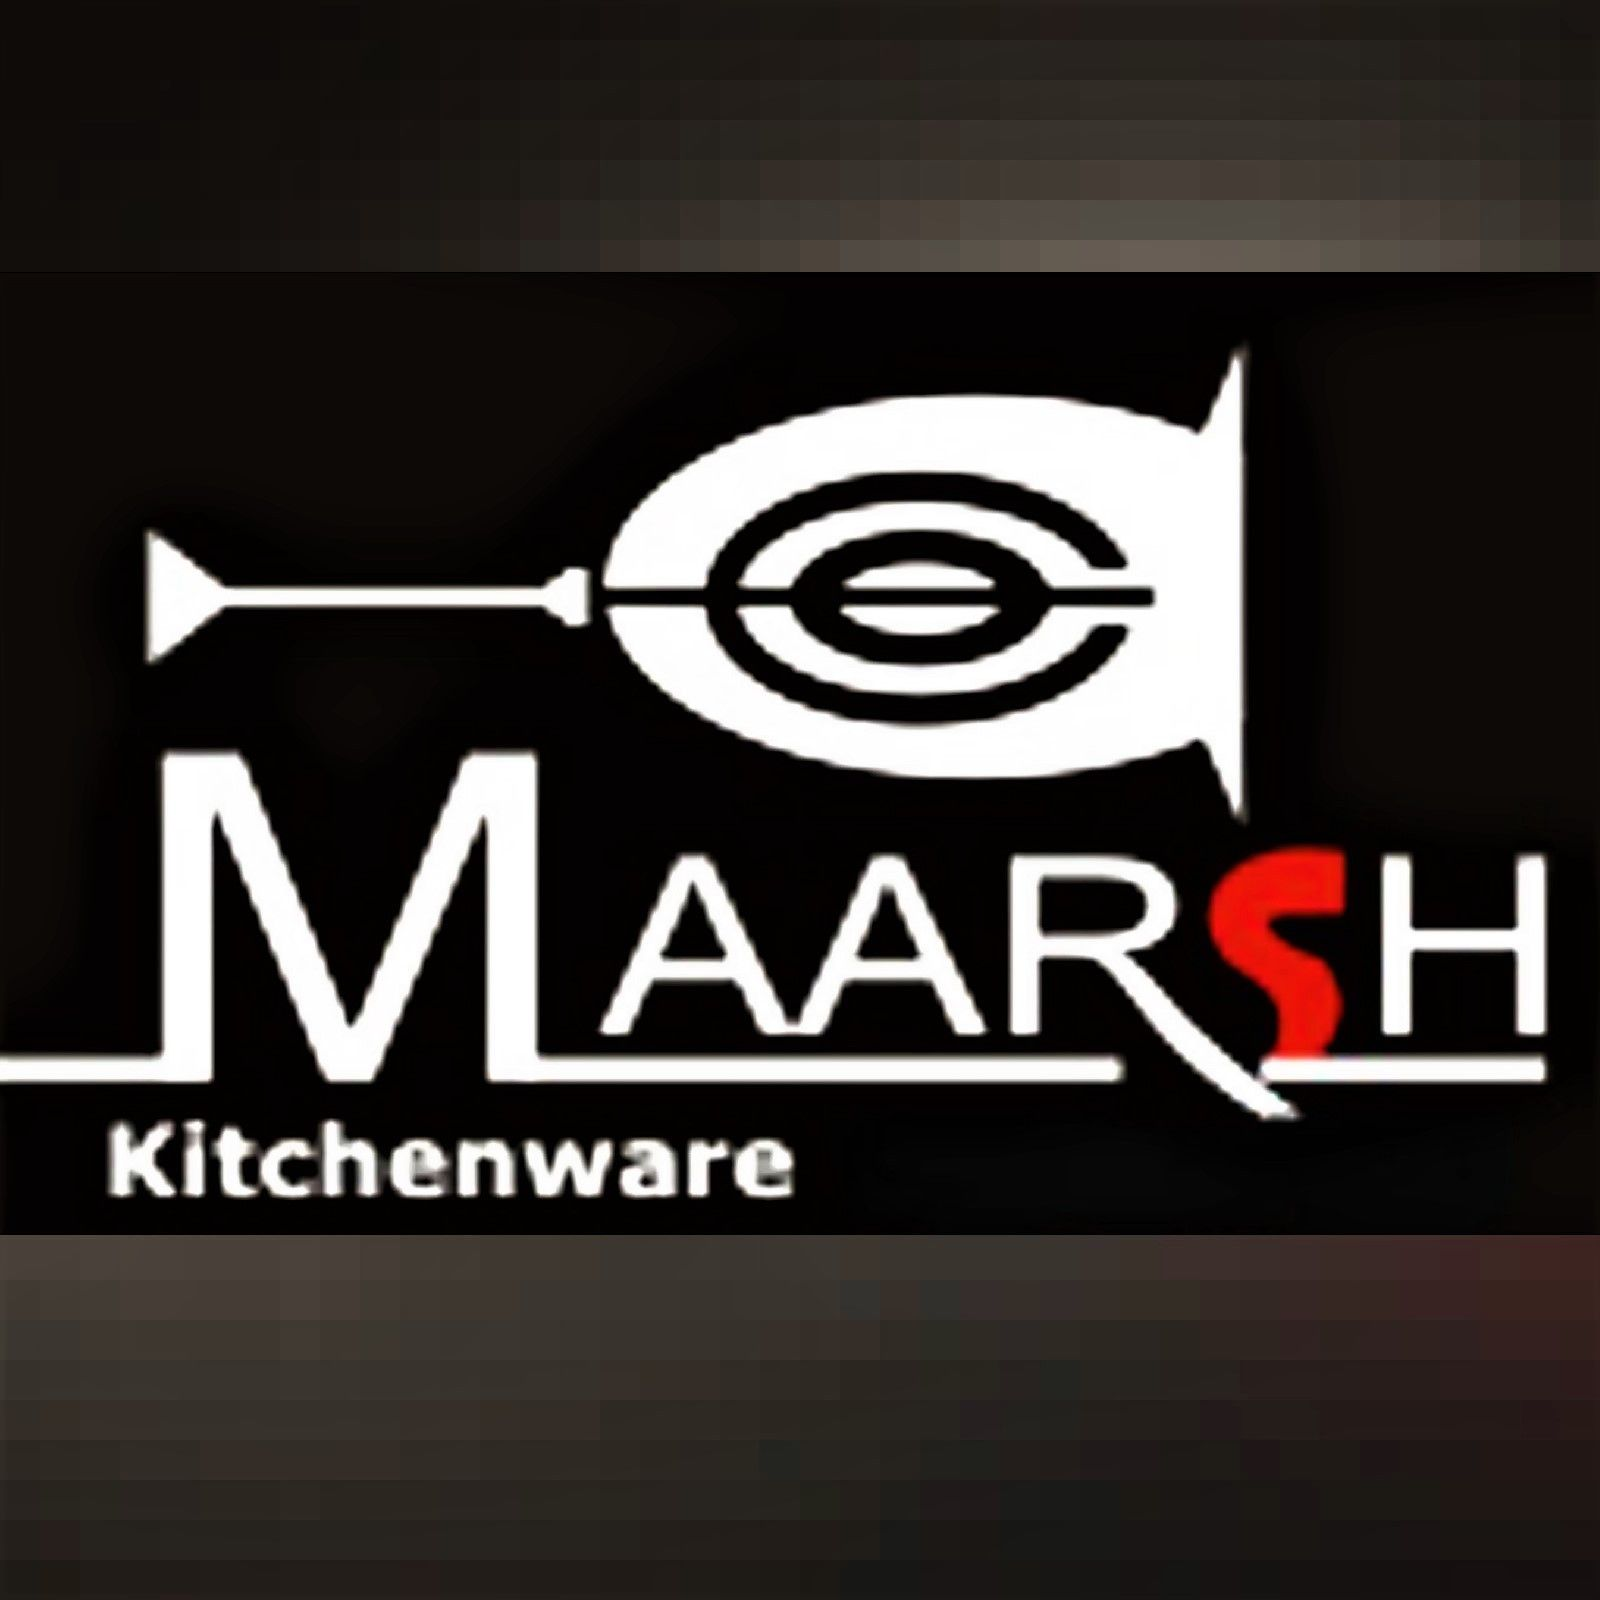 Maarsh Kitchenware - One Stop Hotel Solution 0